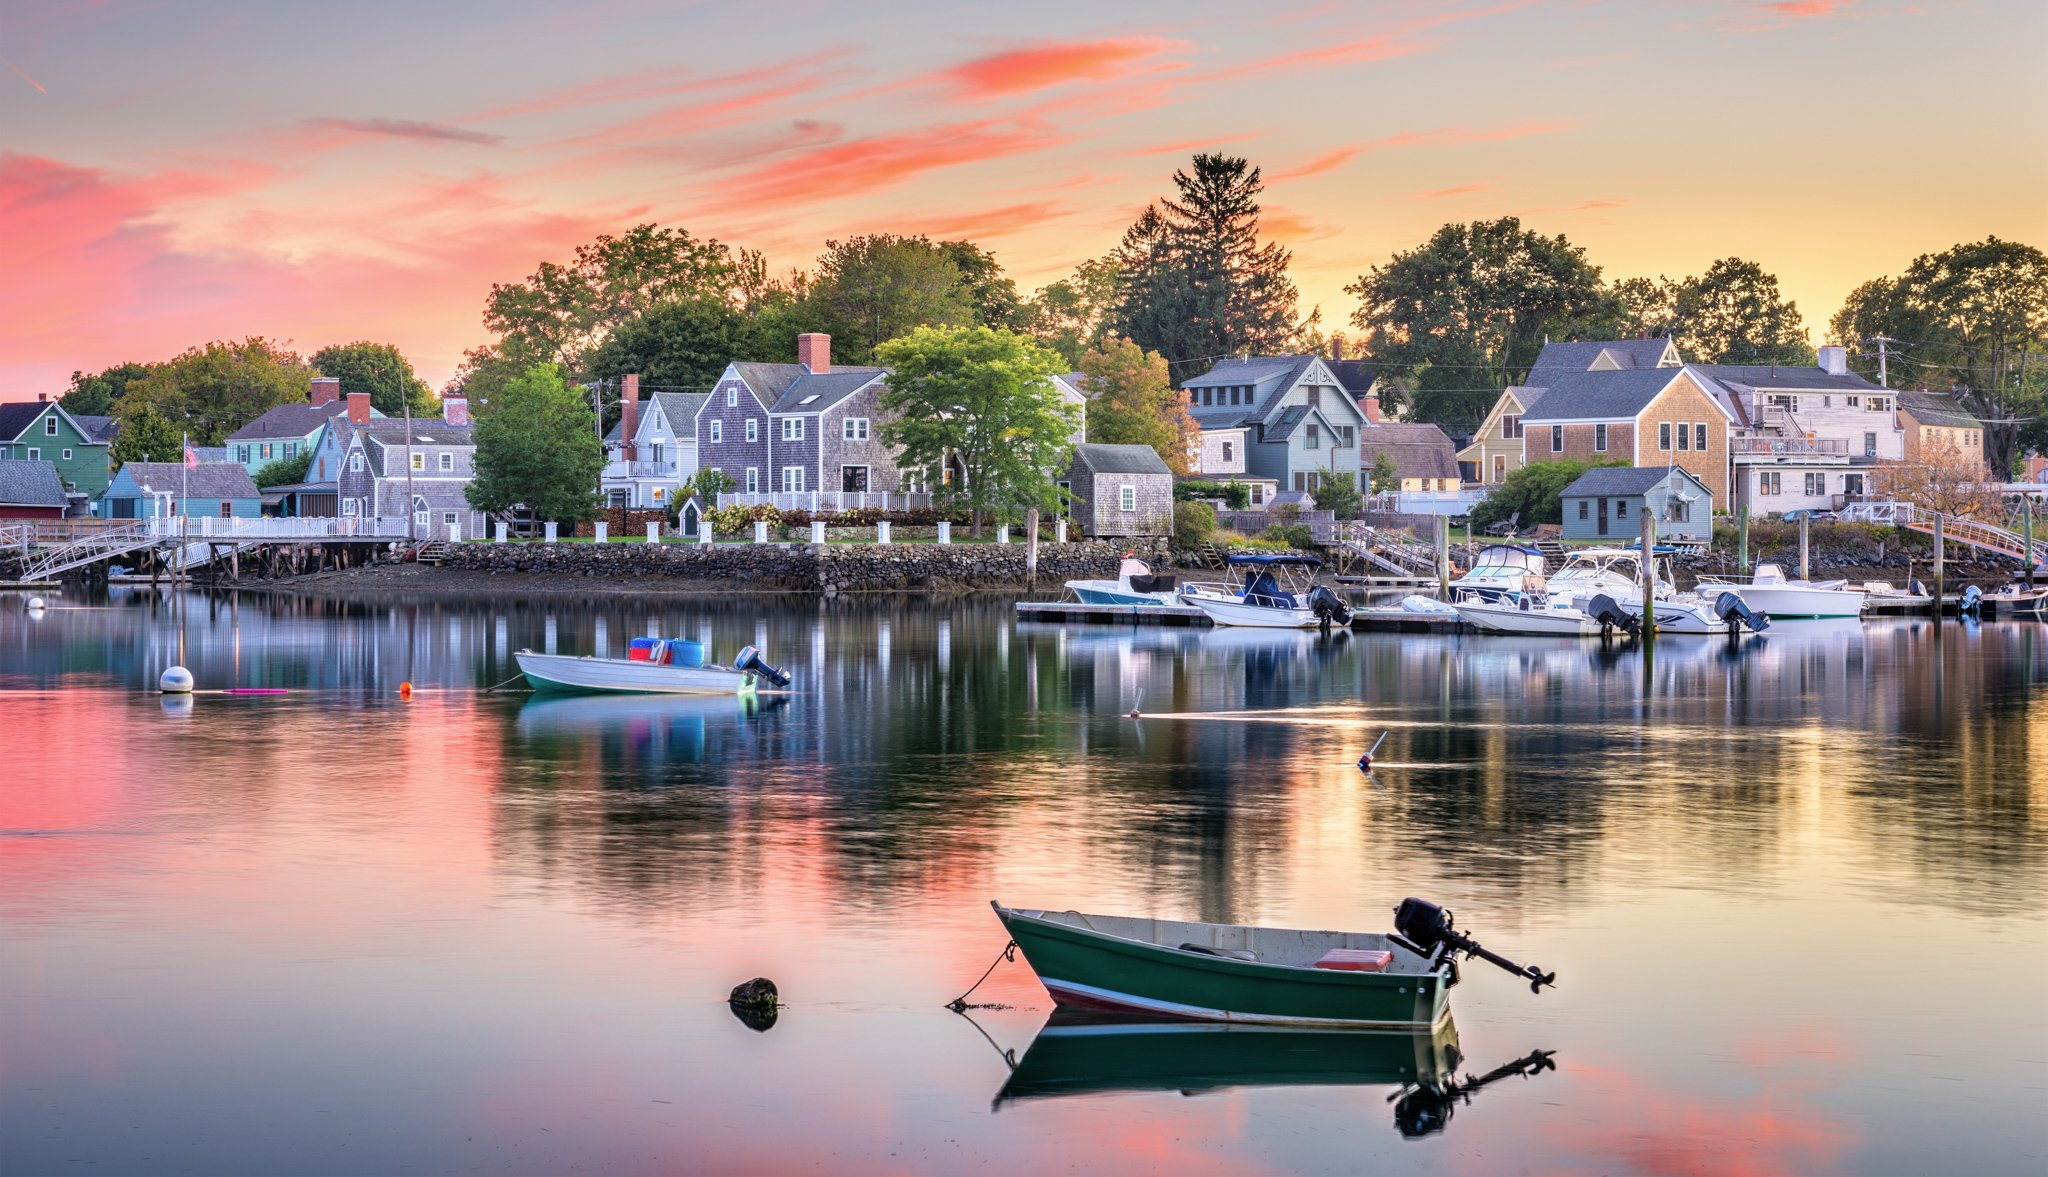 6 Quaint Small Towns In The Northeast To Visit